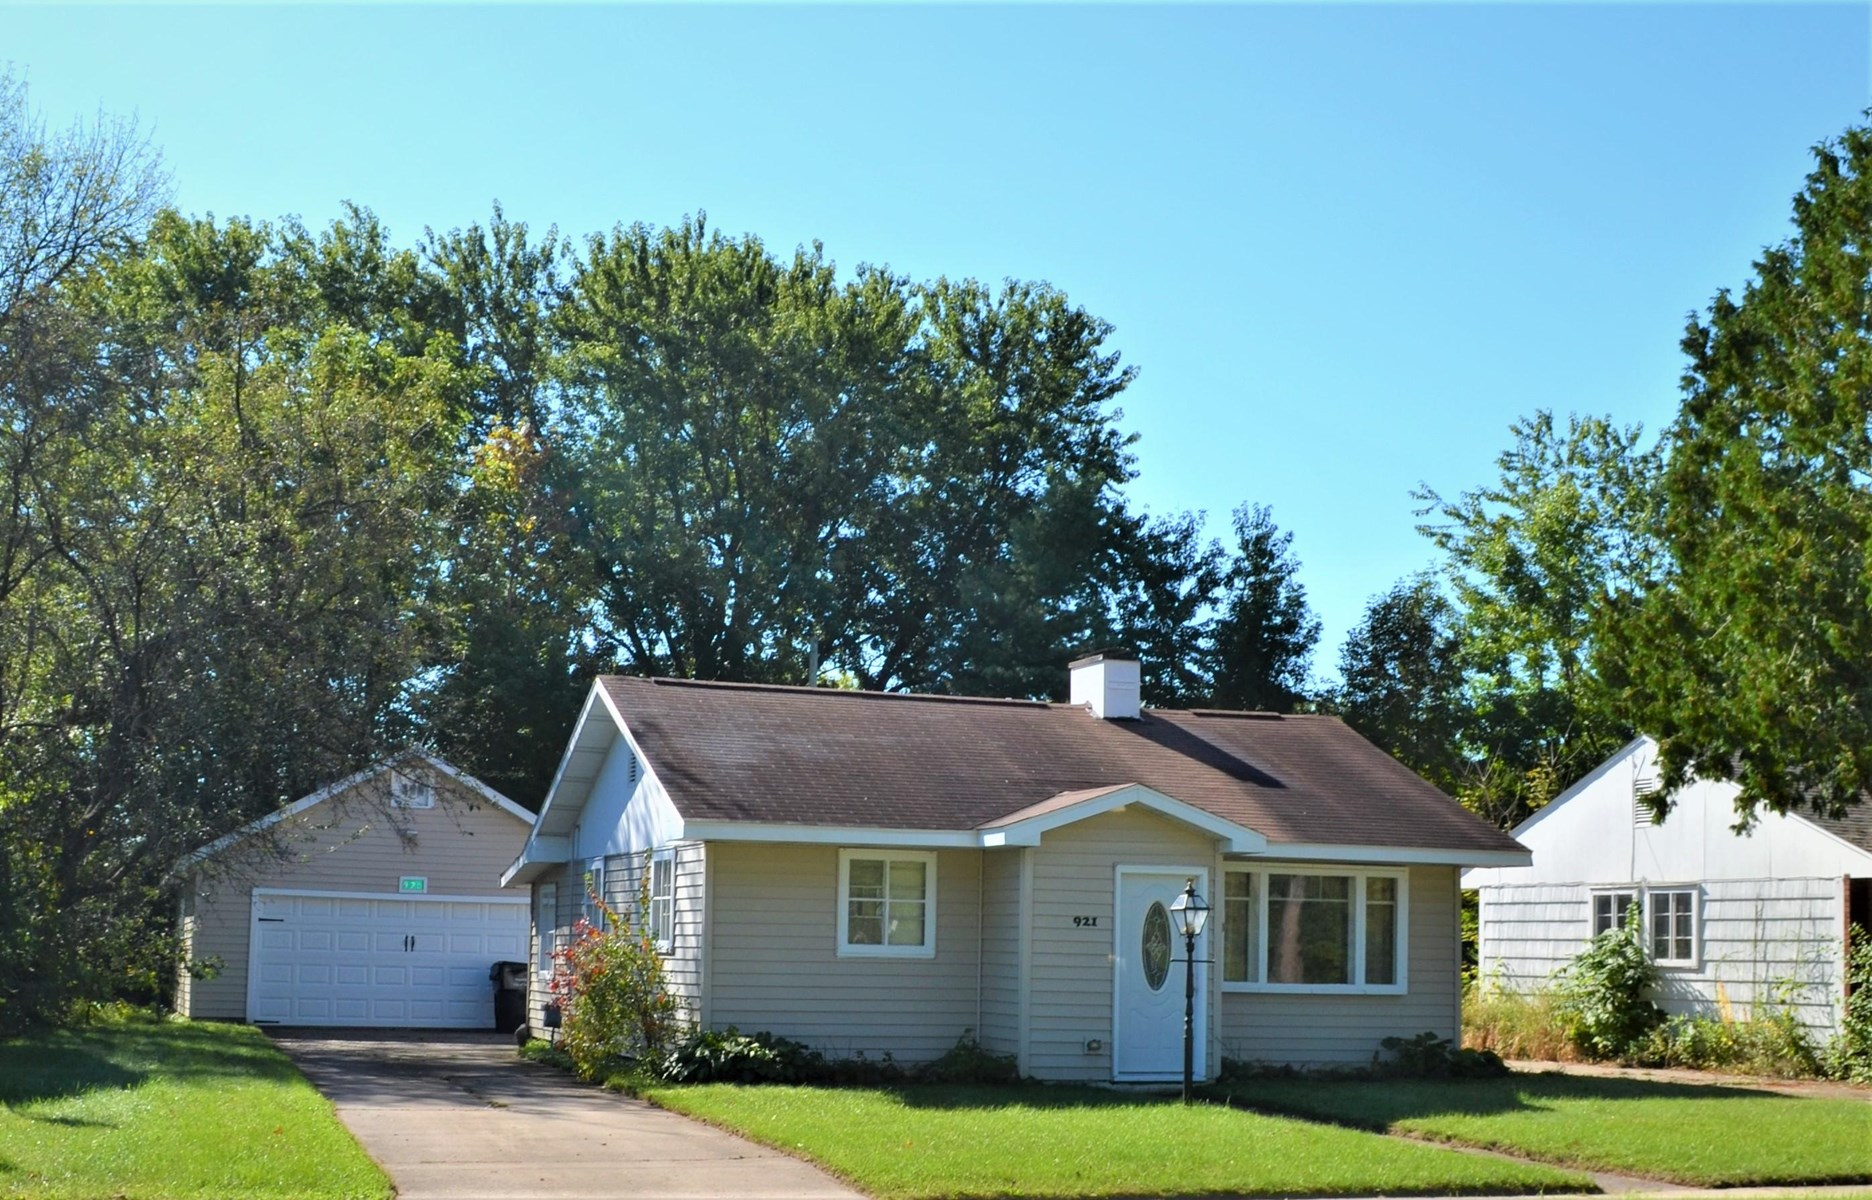 Wonderful 2 bed, 1 full bath home in great location